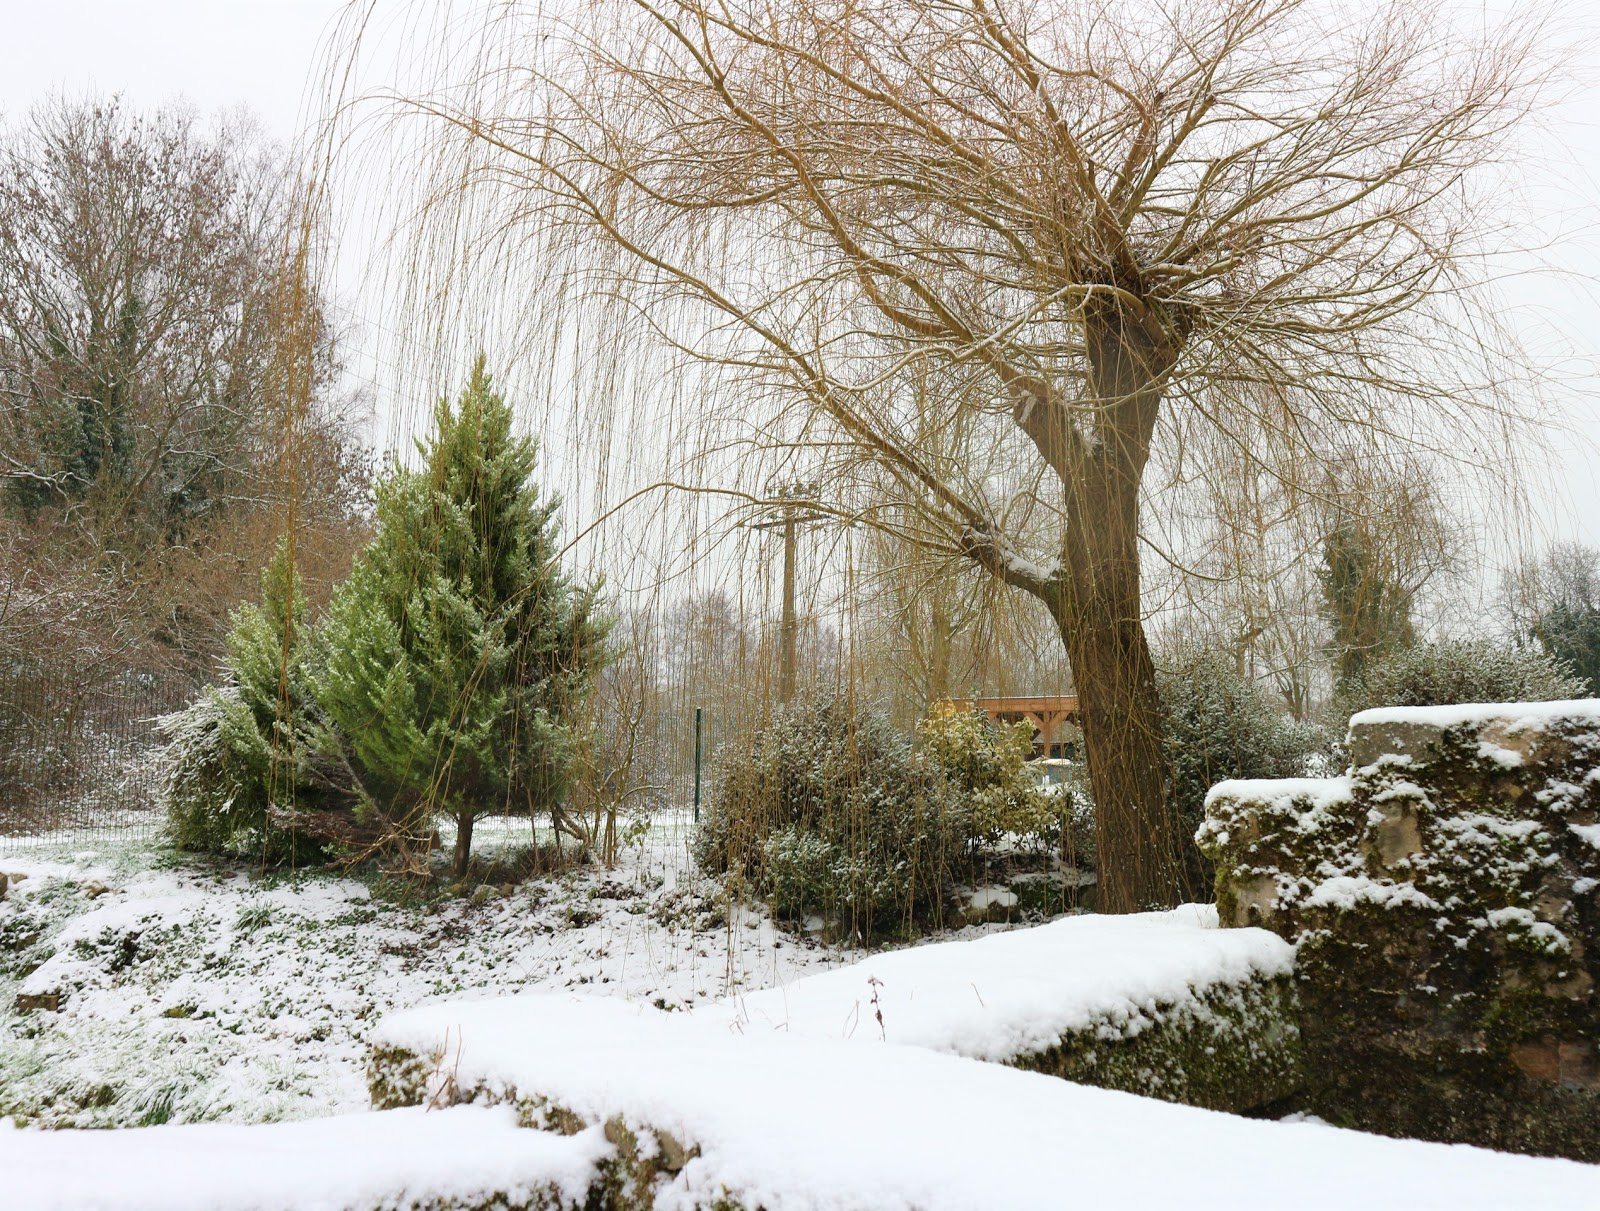 Heather Townsend/Suncream and Sparkles/Snowing in France